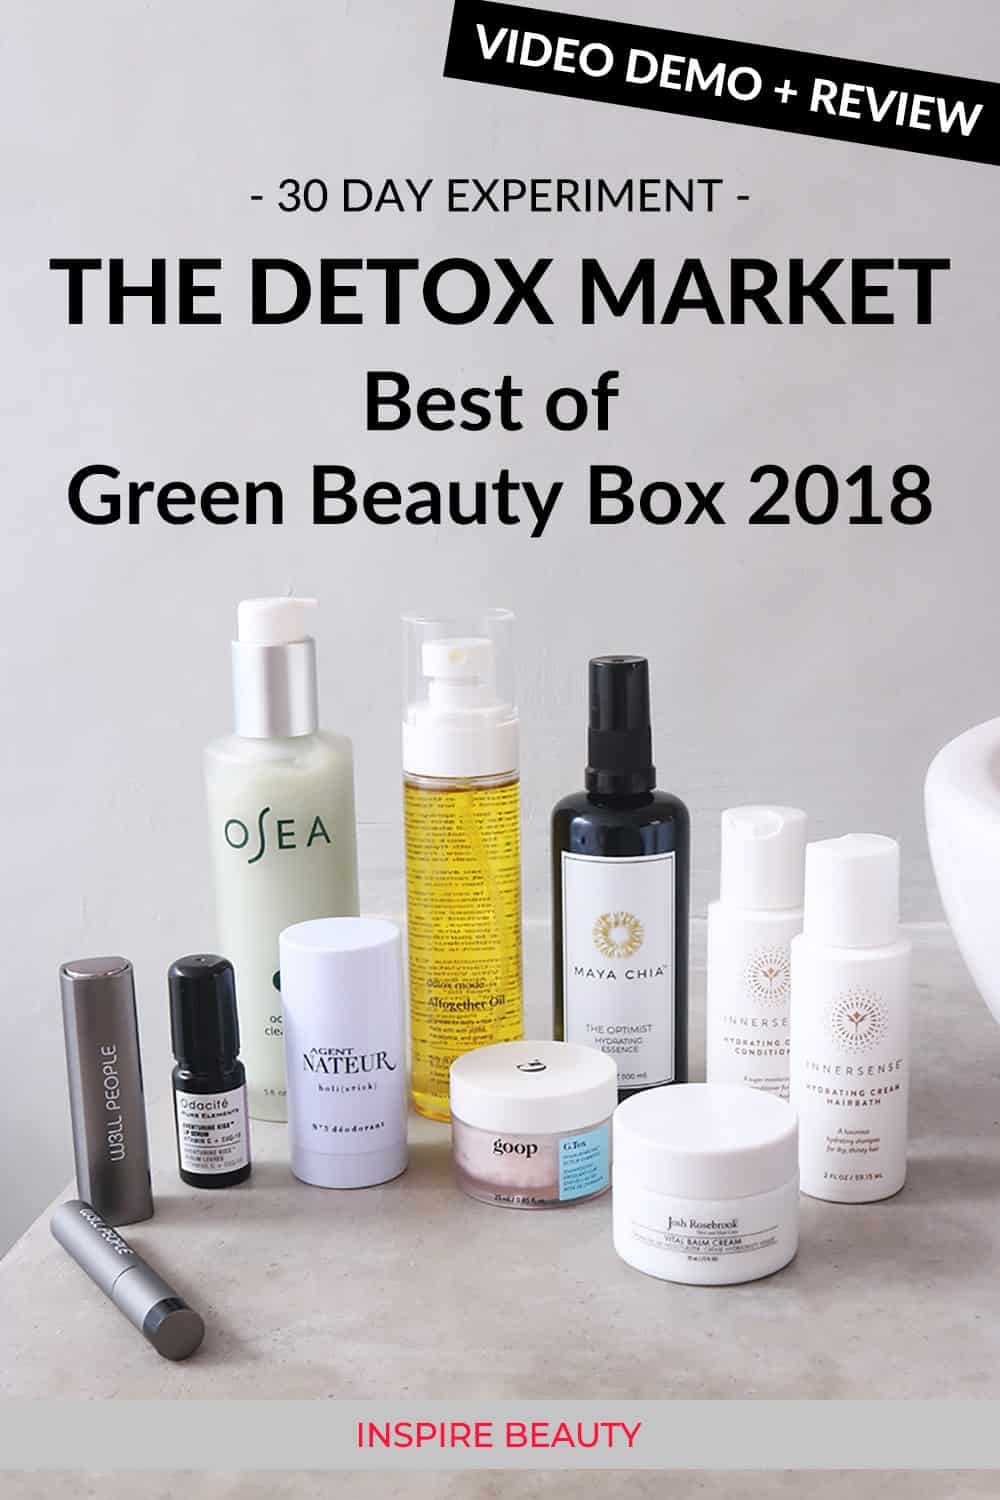 Review of The Detox Market Best Of Green Beauty Box 2018, clean beauty, organic skincare, natural beauty products